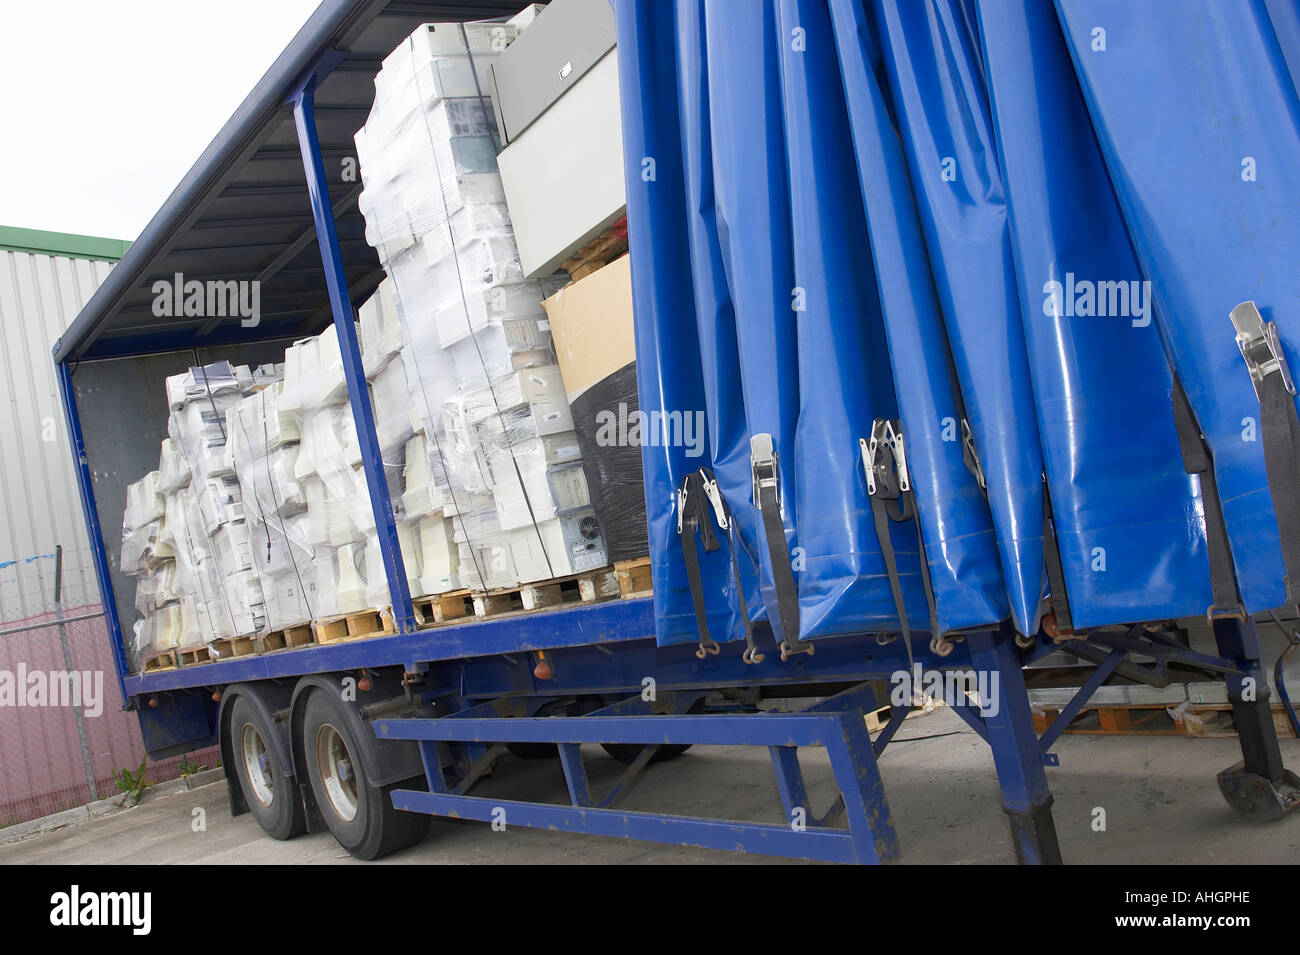 Open Side Of Blue Curtain Lorry Trailer Containing Pallets